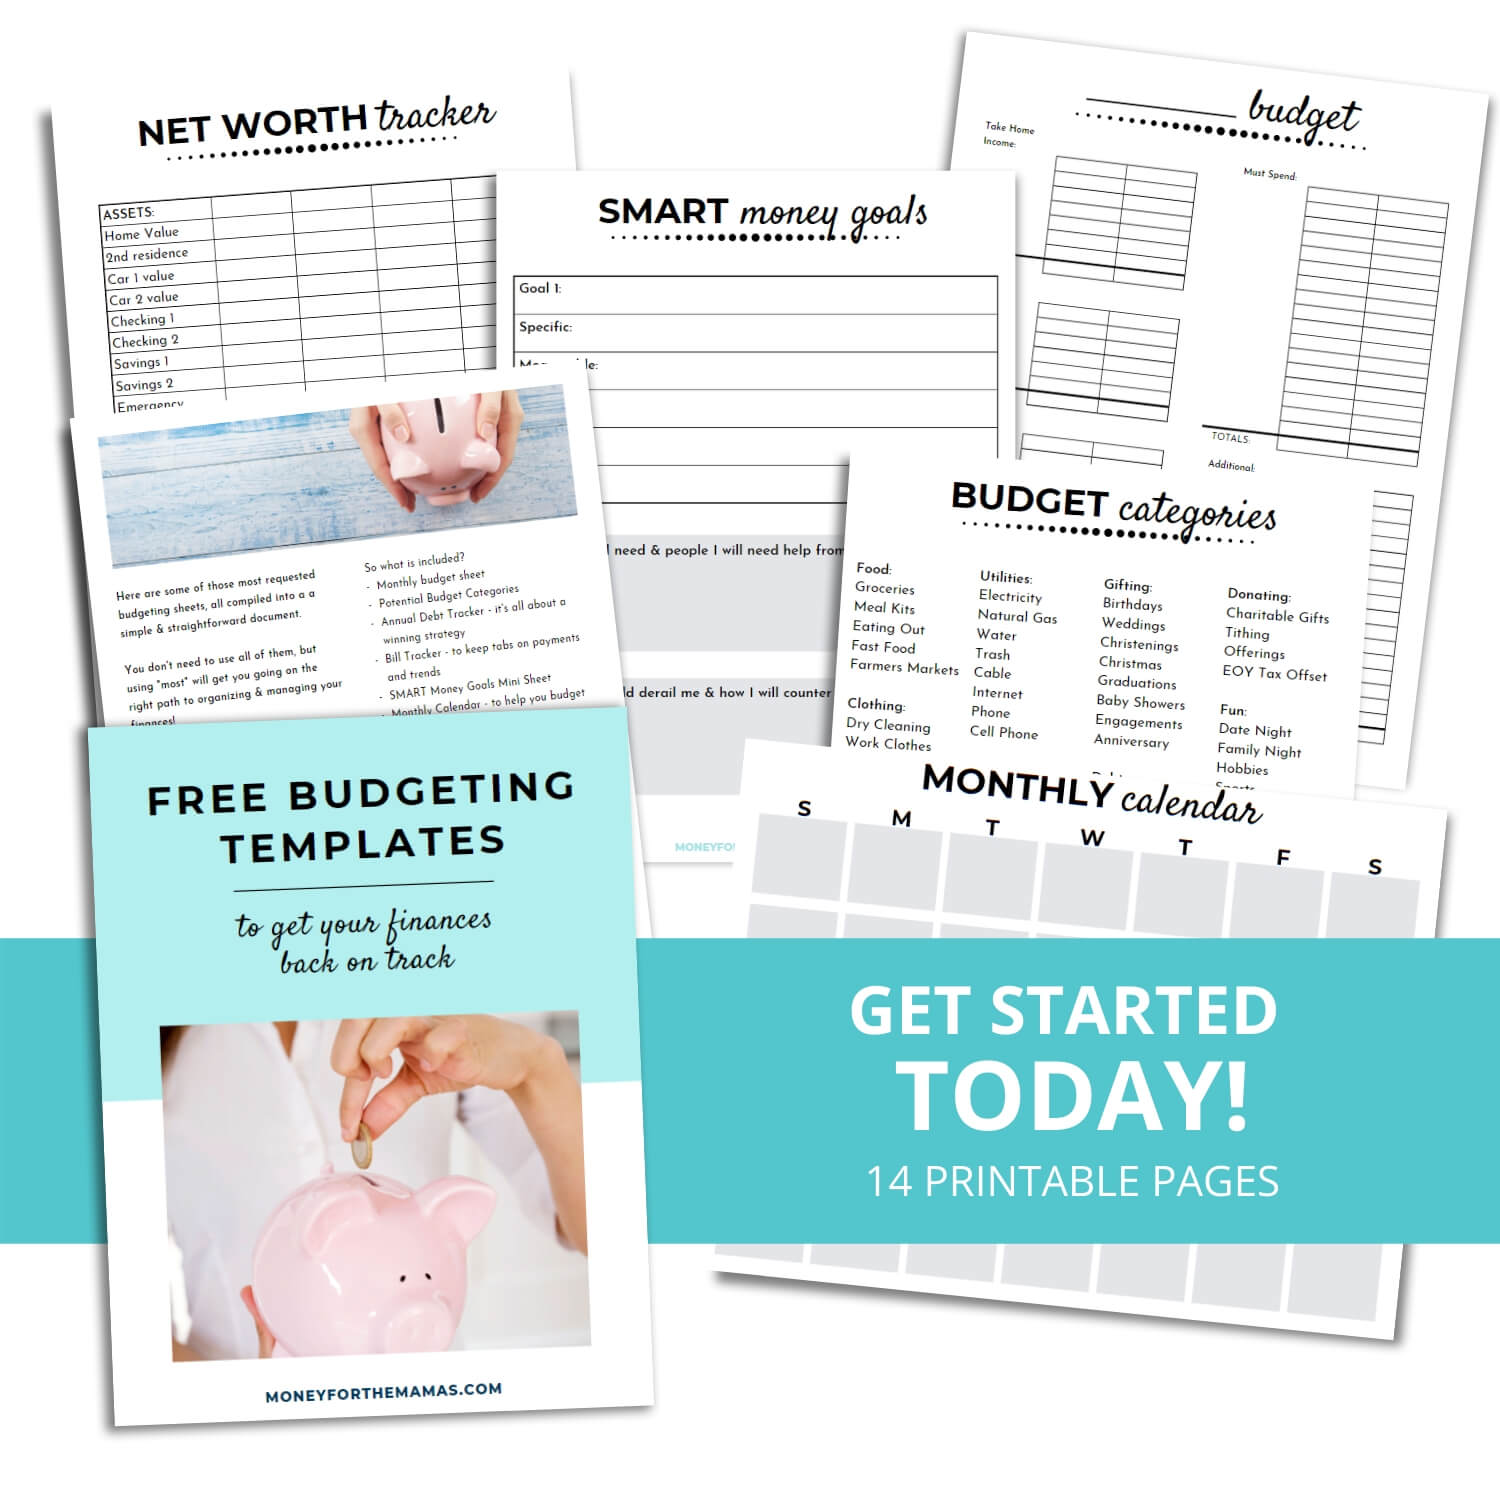 The Free Budgeting Templates You Have To Have